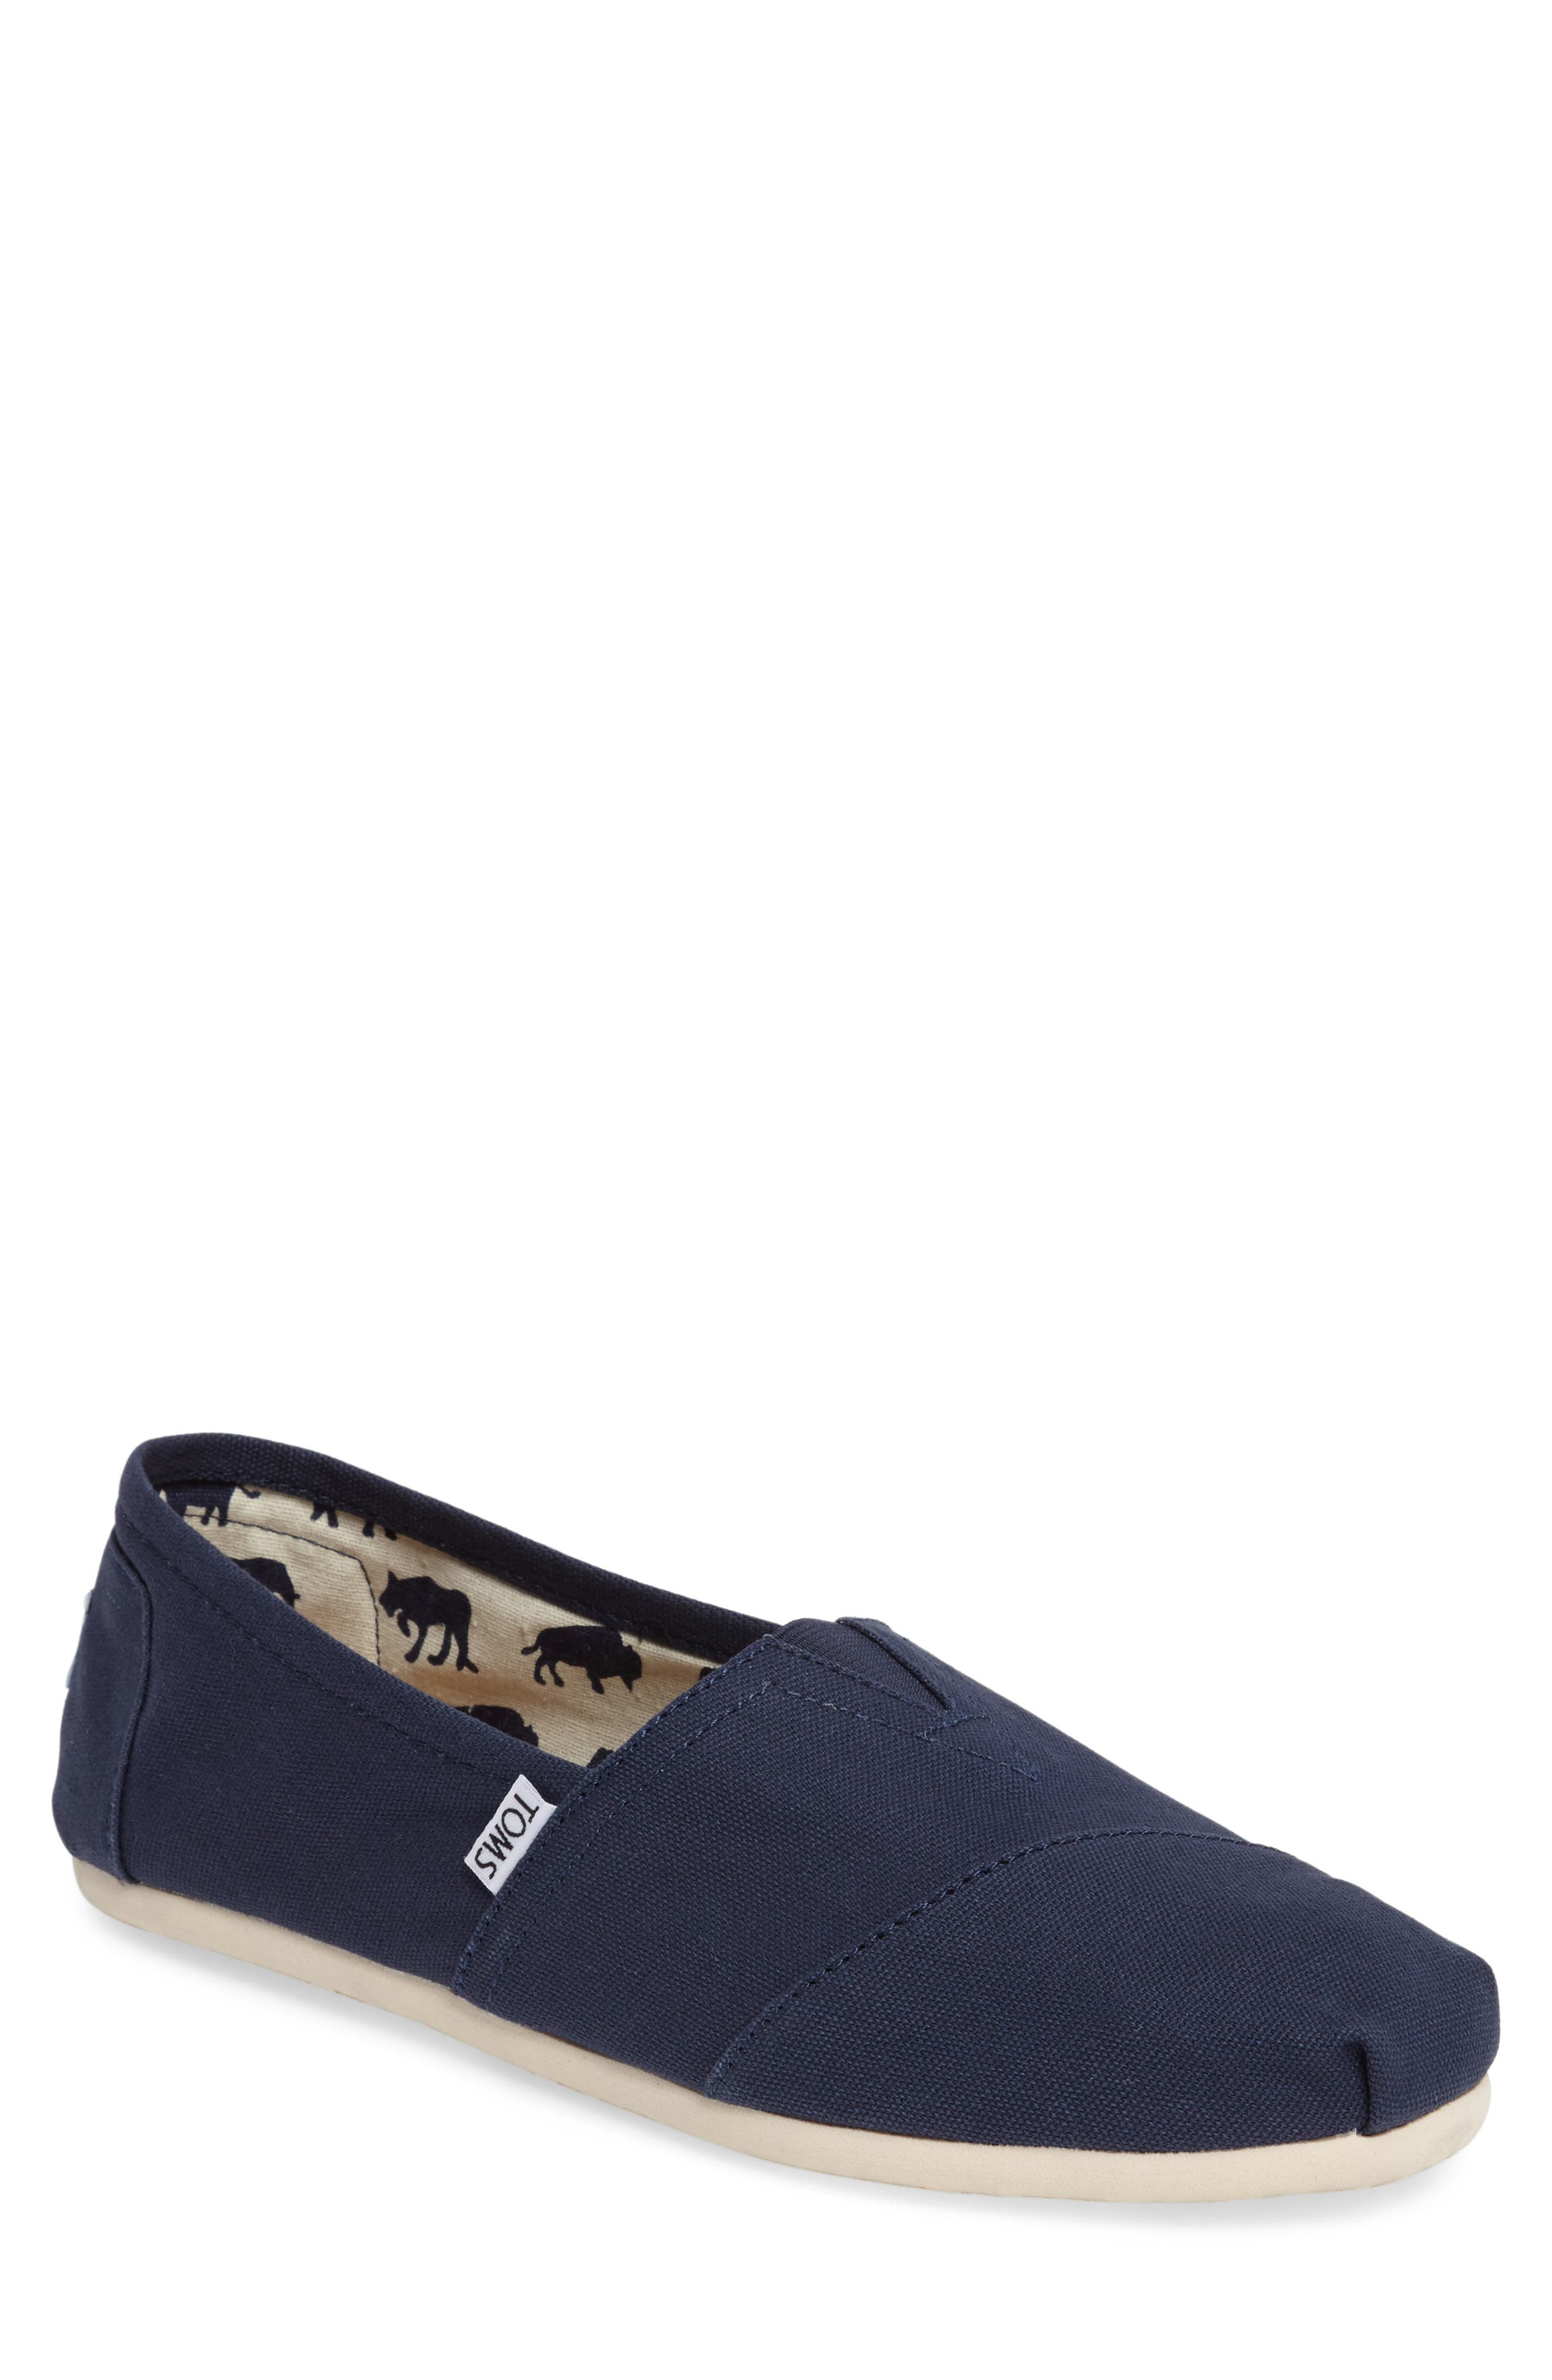 TOMS, 'Classic' Canvas Slip-On, Main thumbnail 1, color, NAVY